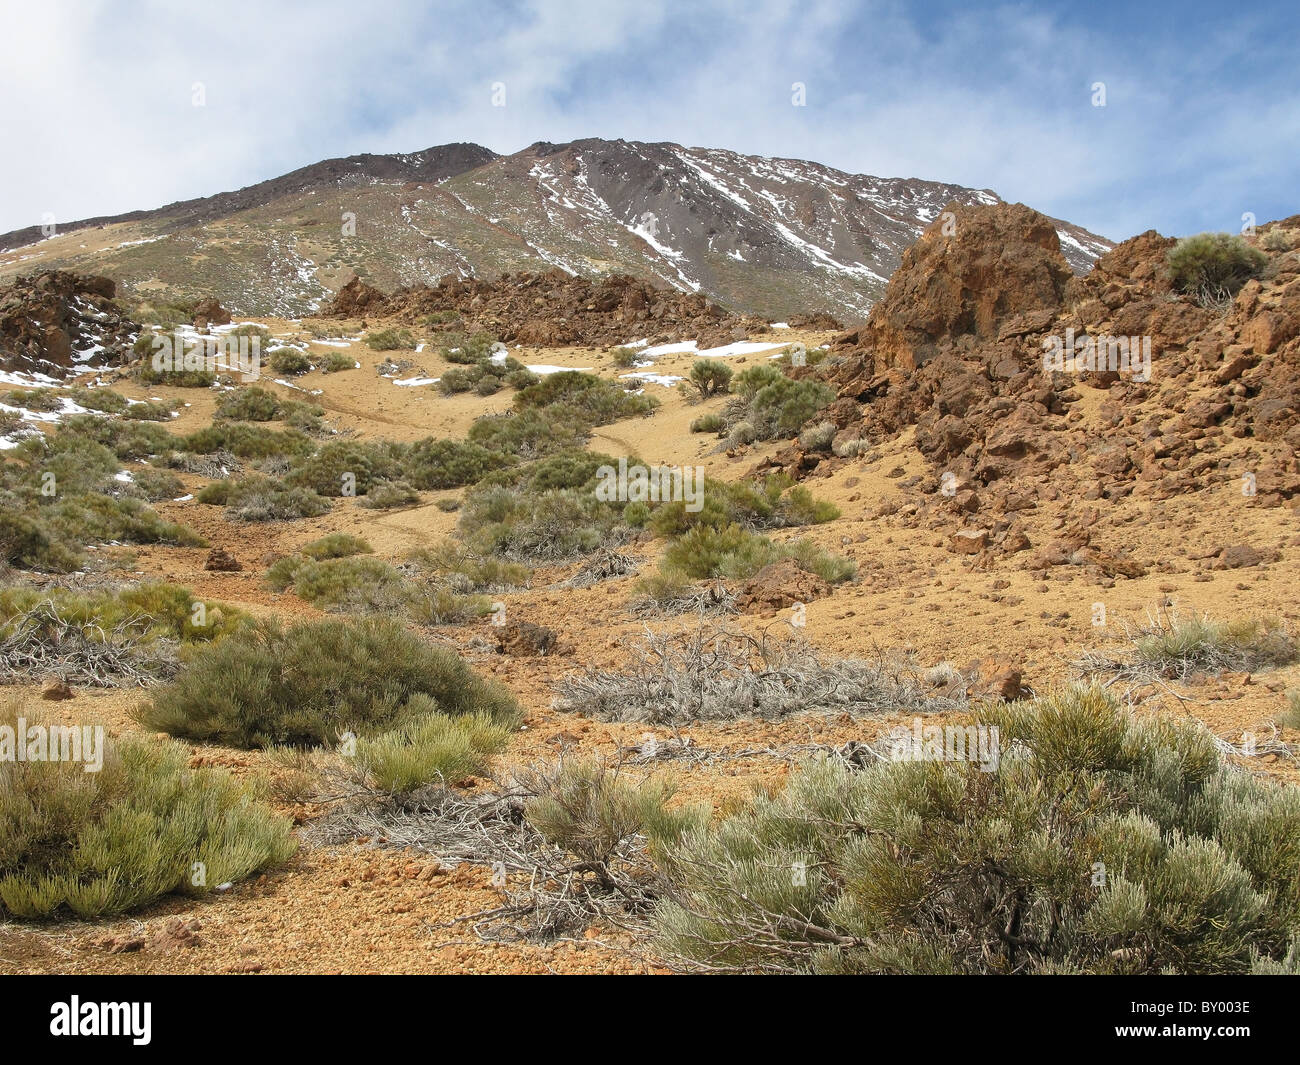 Looking up at Mount Teide from volcanic landscape, Tenerife, Islas Canarias (Canary Islands), Spain. - Stock Image